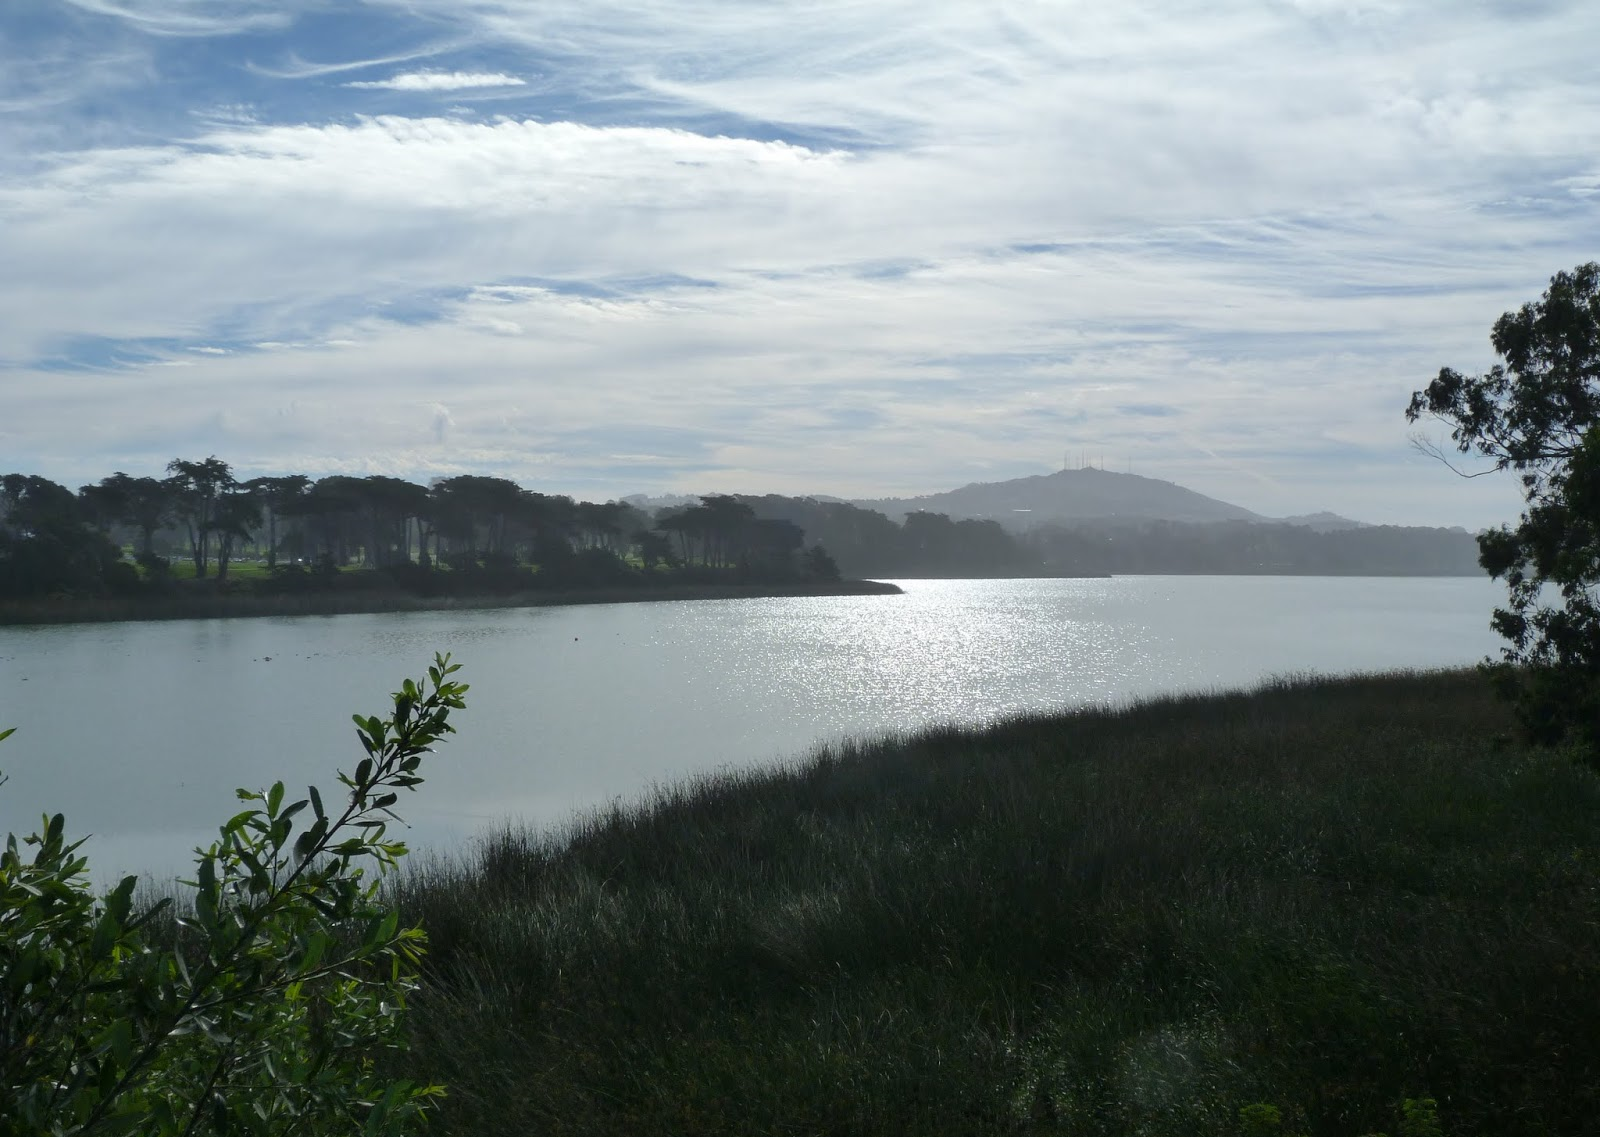 Lake Merced Park is a 614-acre area with a 4.5-mile recreational trail encircling a freshwater lake, popular for fishing, boating, jogging and biking.